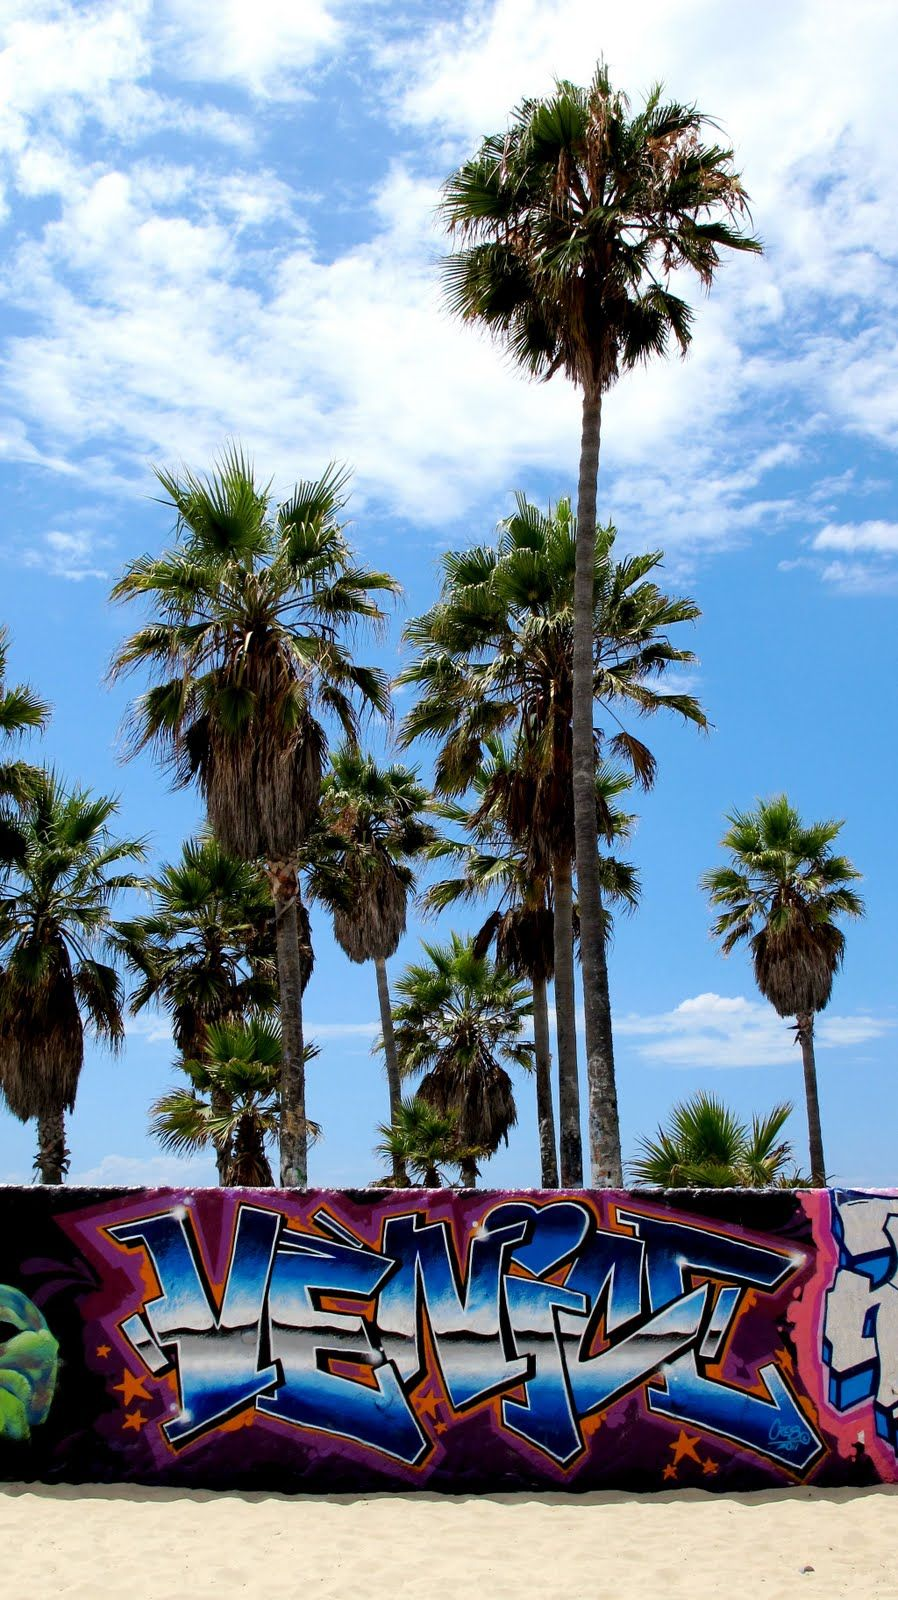 Venice Beach Get All The Best Travel Ticket Deals Guaranteed Http